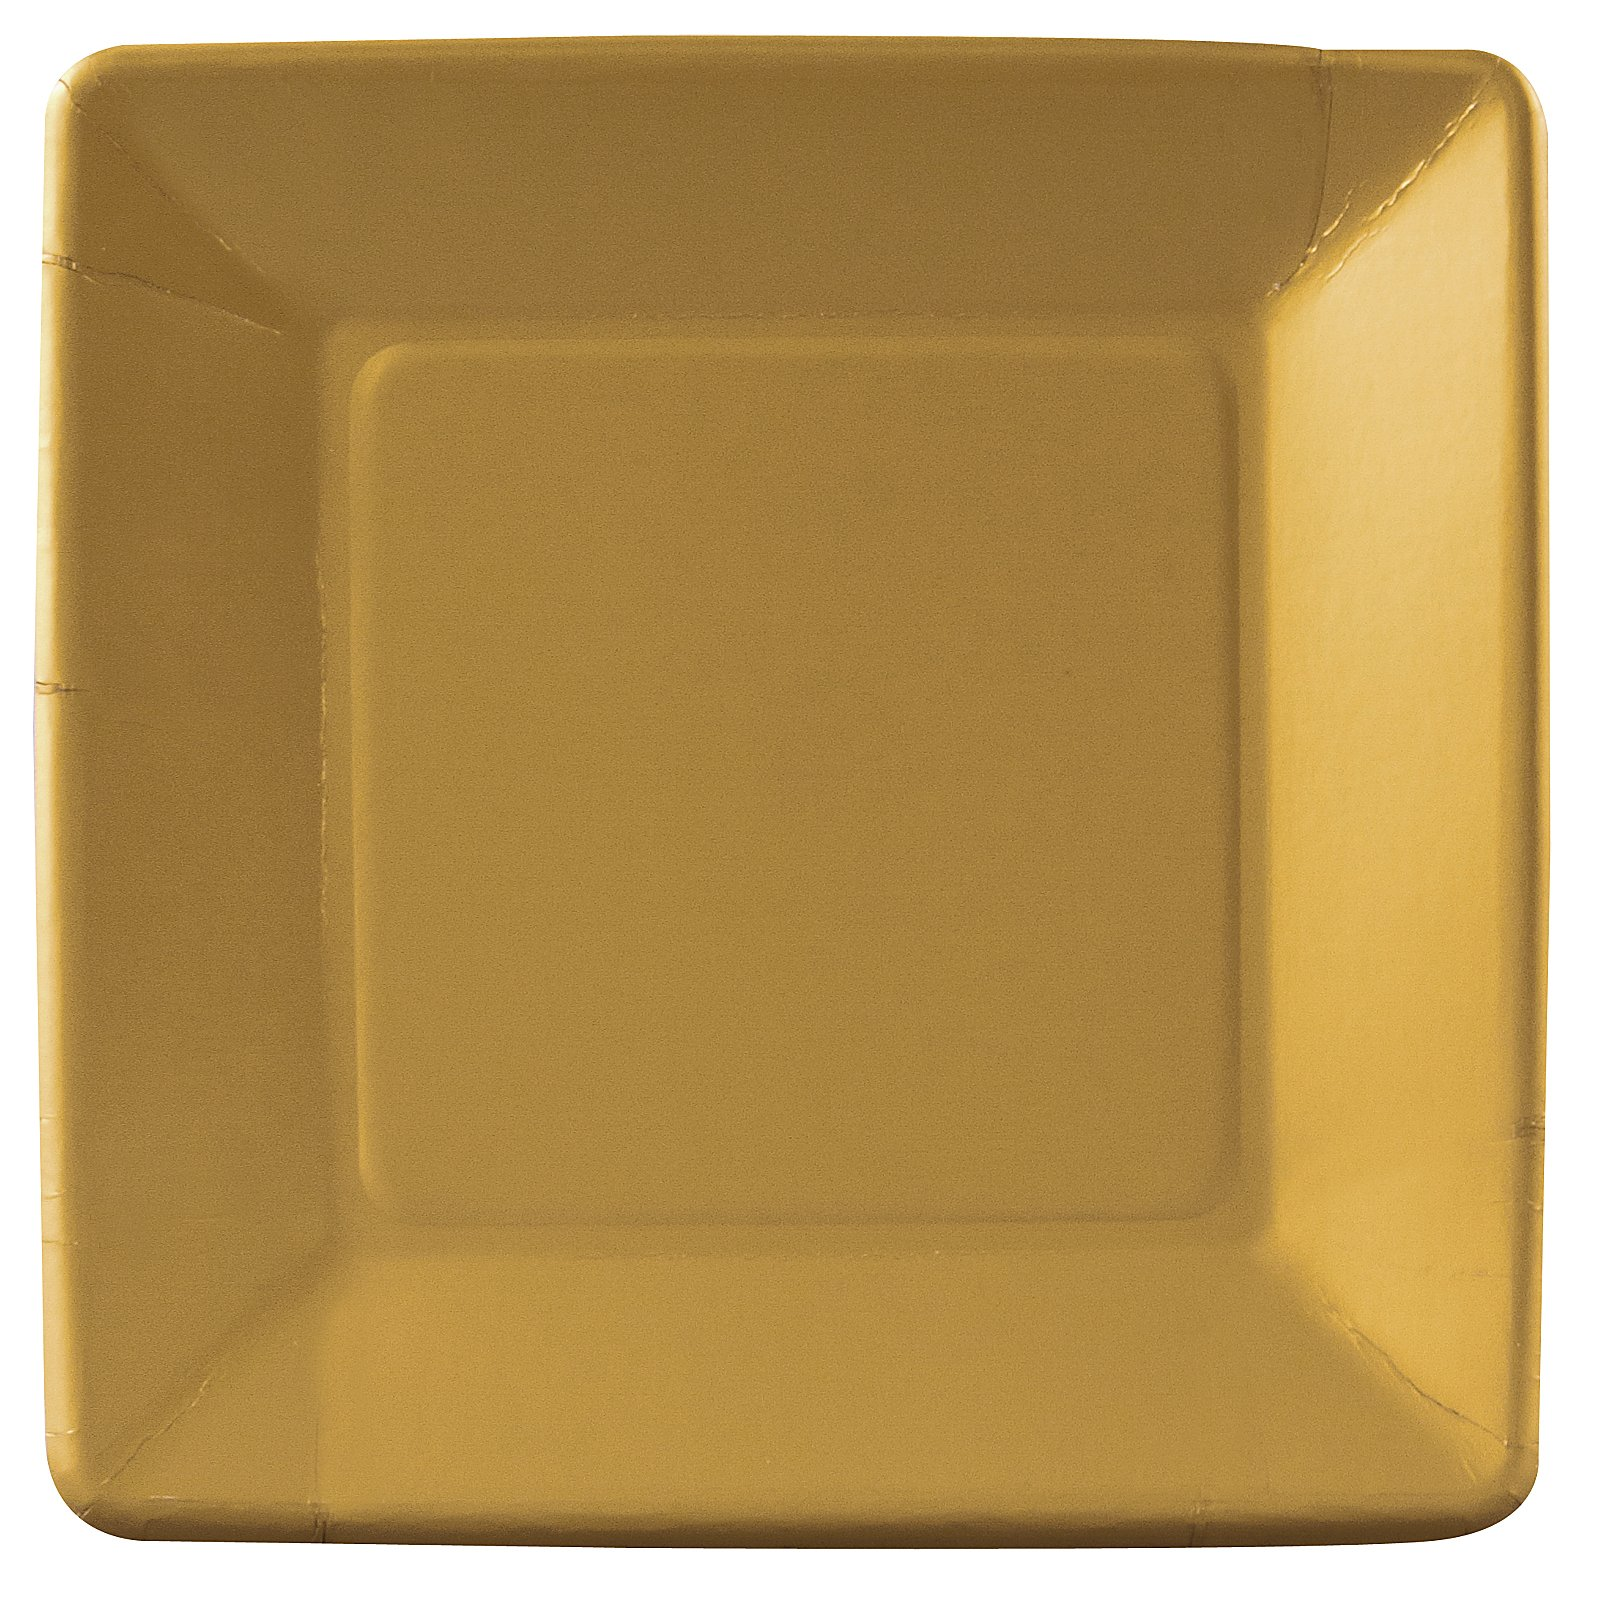 Glittering Gold (Gold) Dinner Plates (18 count)